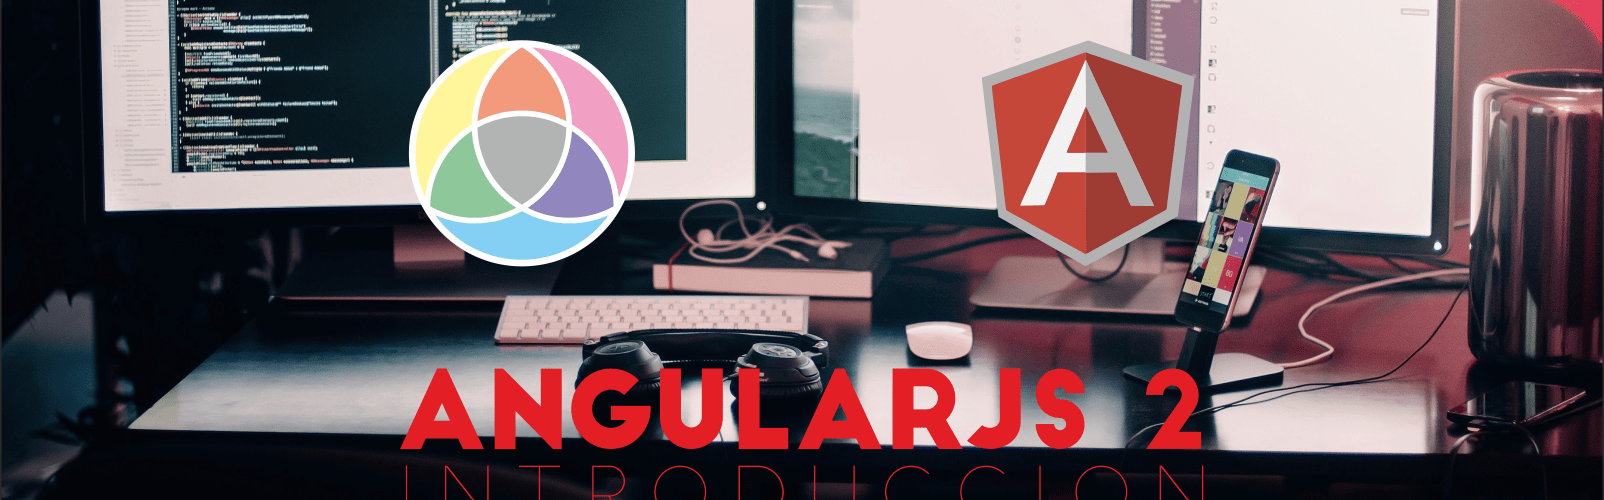 Introducción AngularJS 2